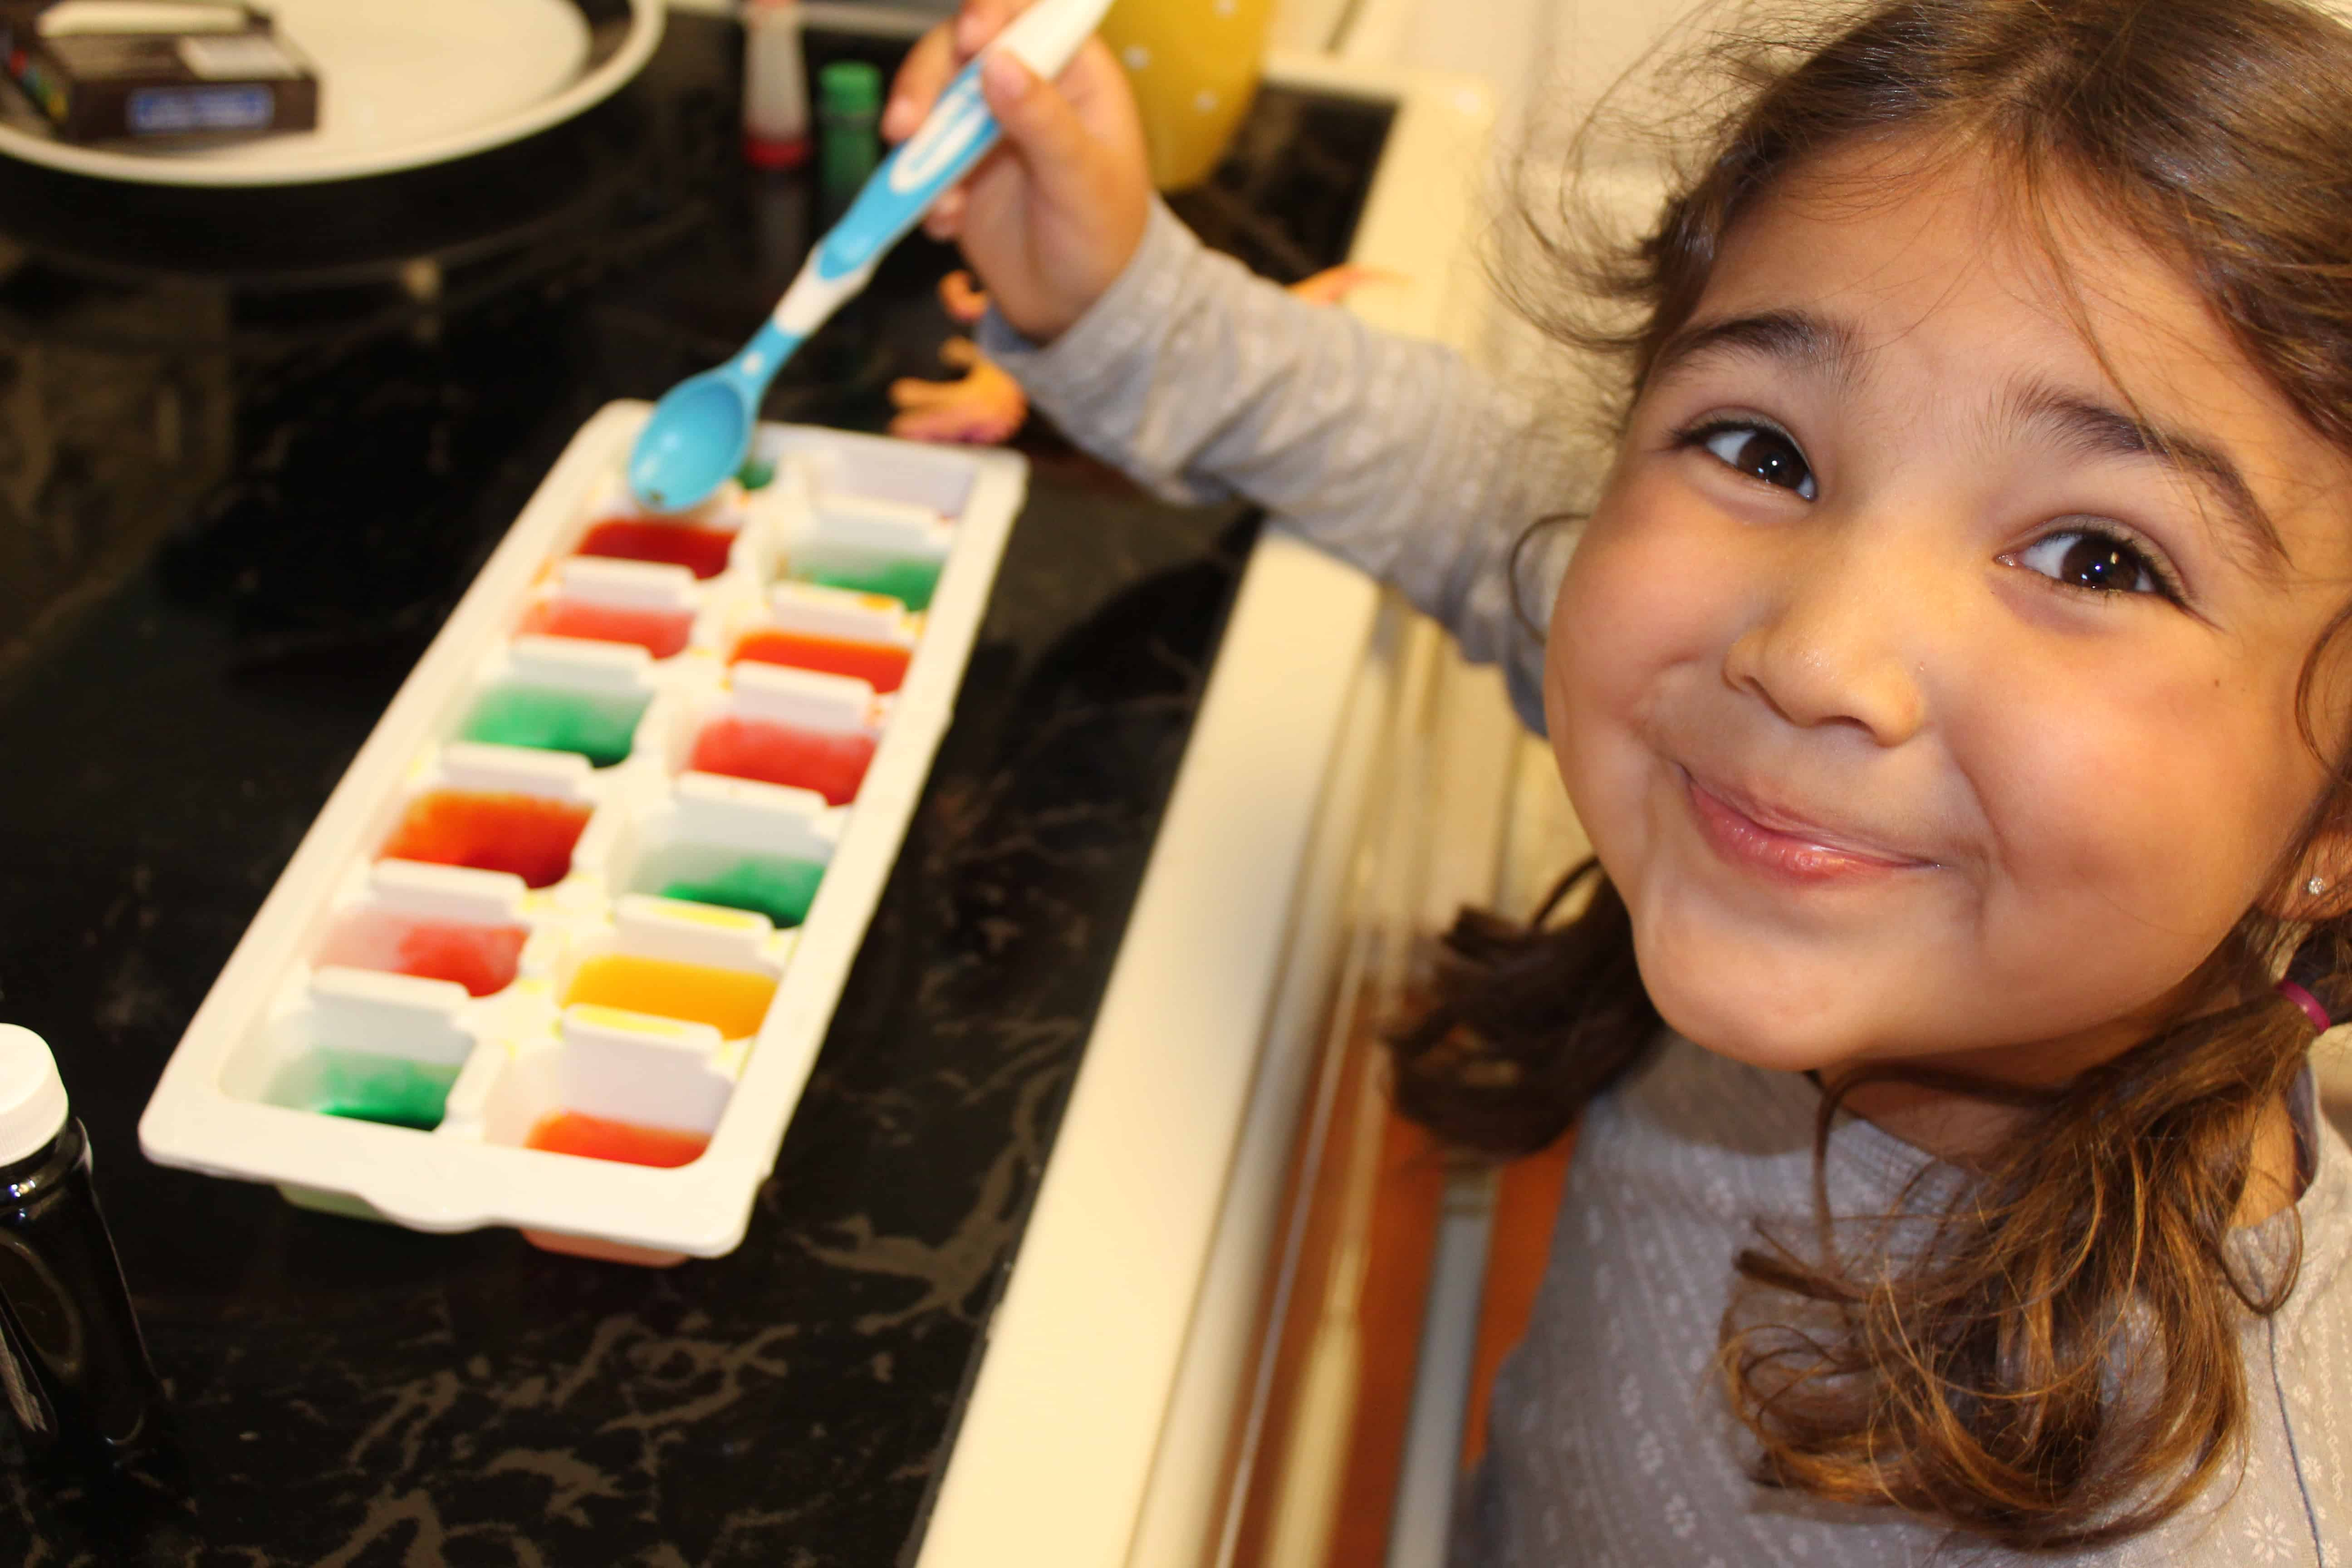 Child smiling with ice tray full of water and food coloring